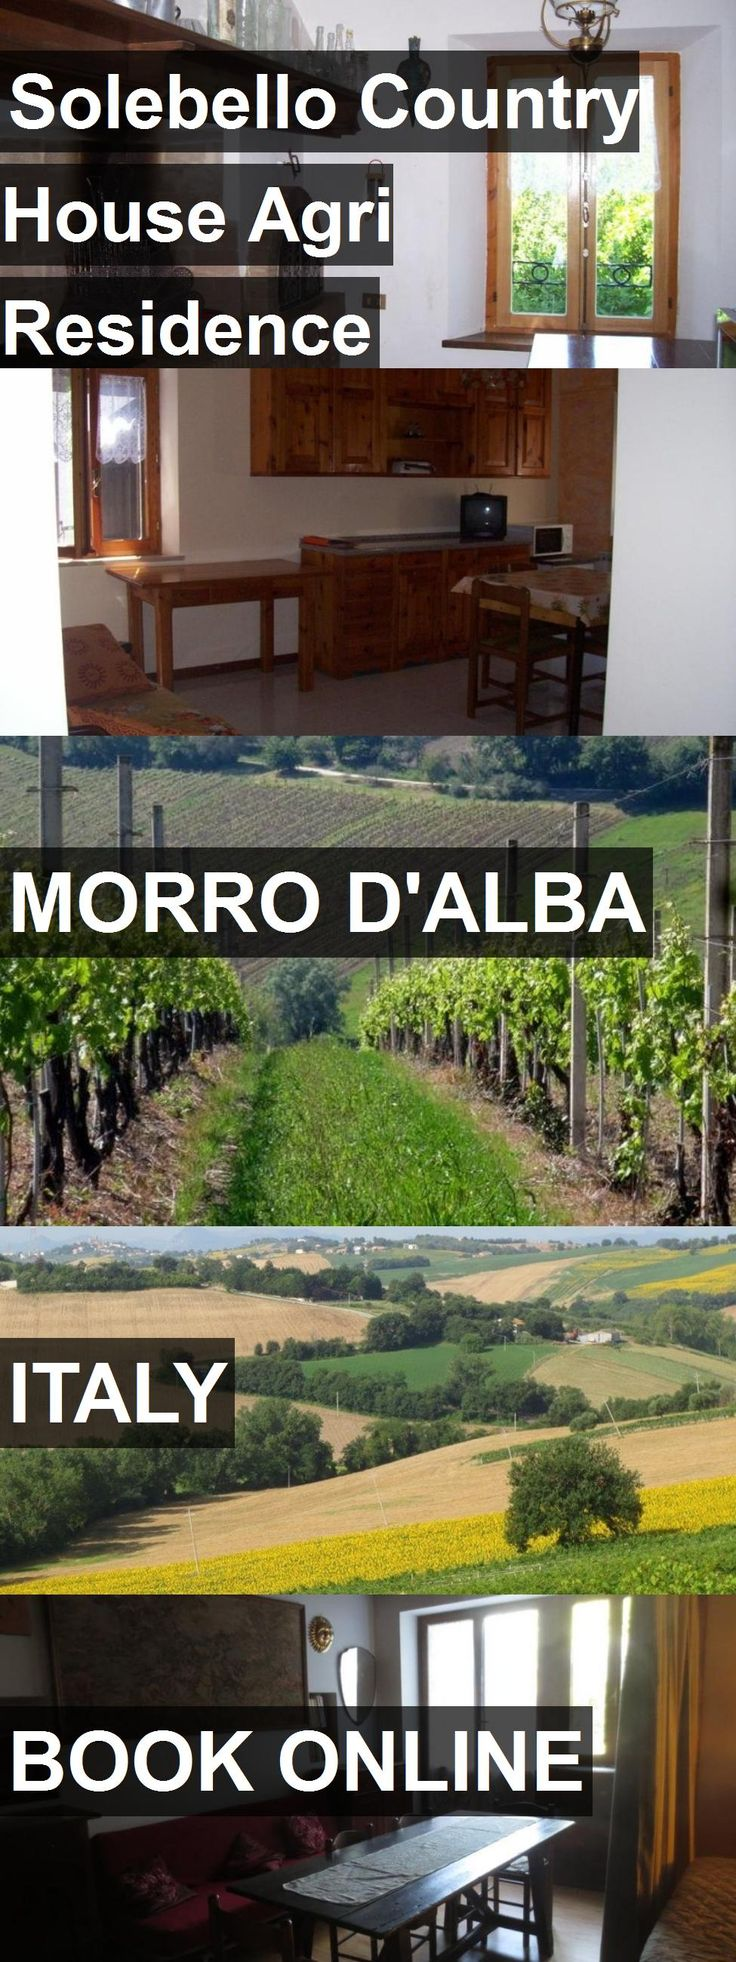 Hotel Solebello Country House Agri Residence in Morro d'Alba, Italy. For more information, photos, reviews and best prices please follow the link. #Italy #Morrod'Alba #SolebelloCountryHouseAgriResidence #hotel #travel #vacation